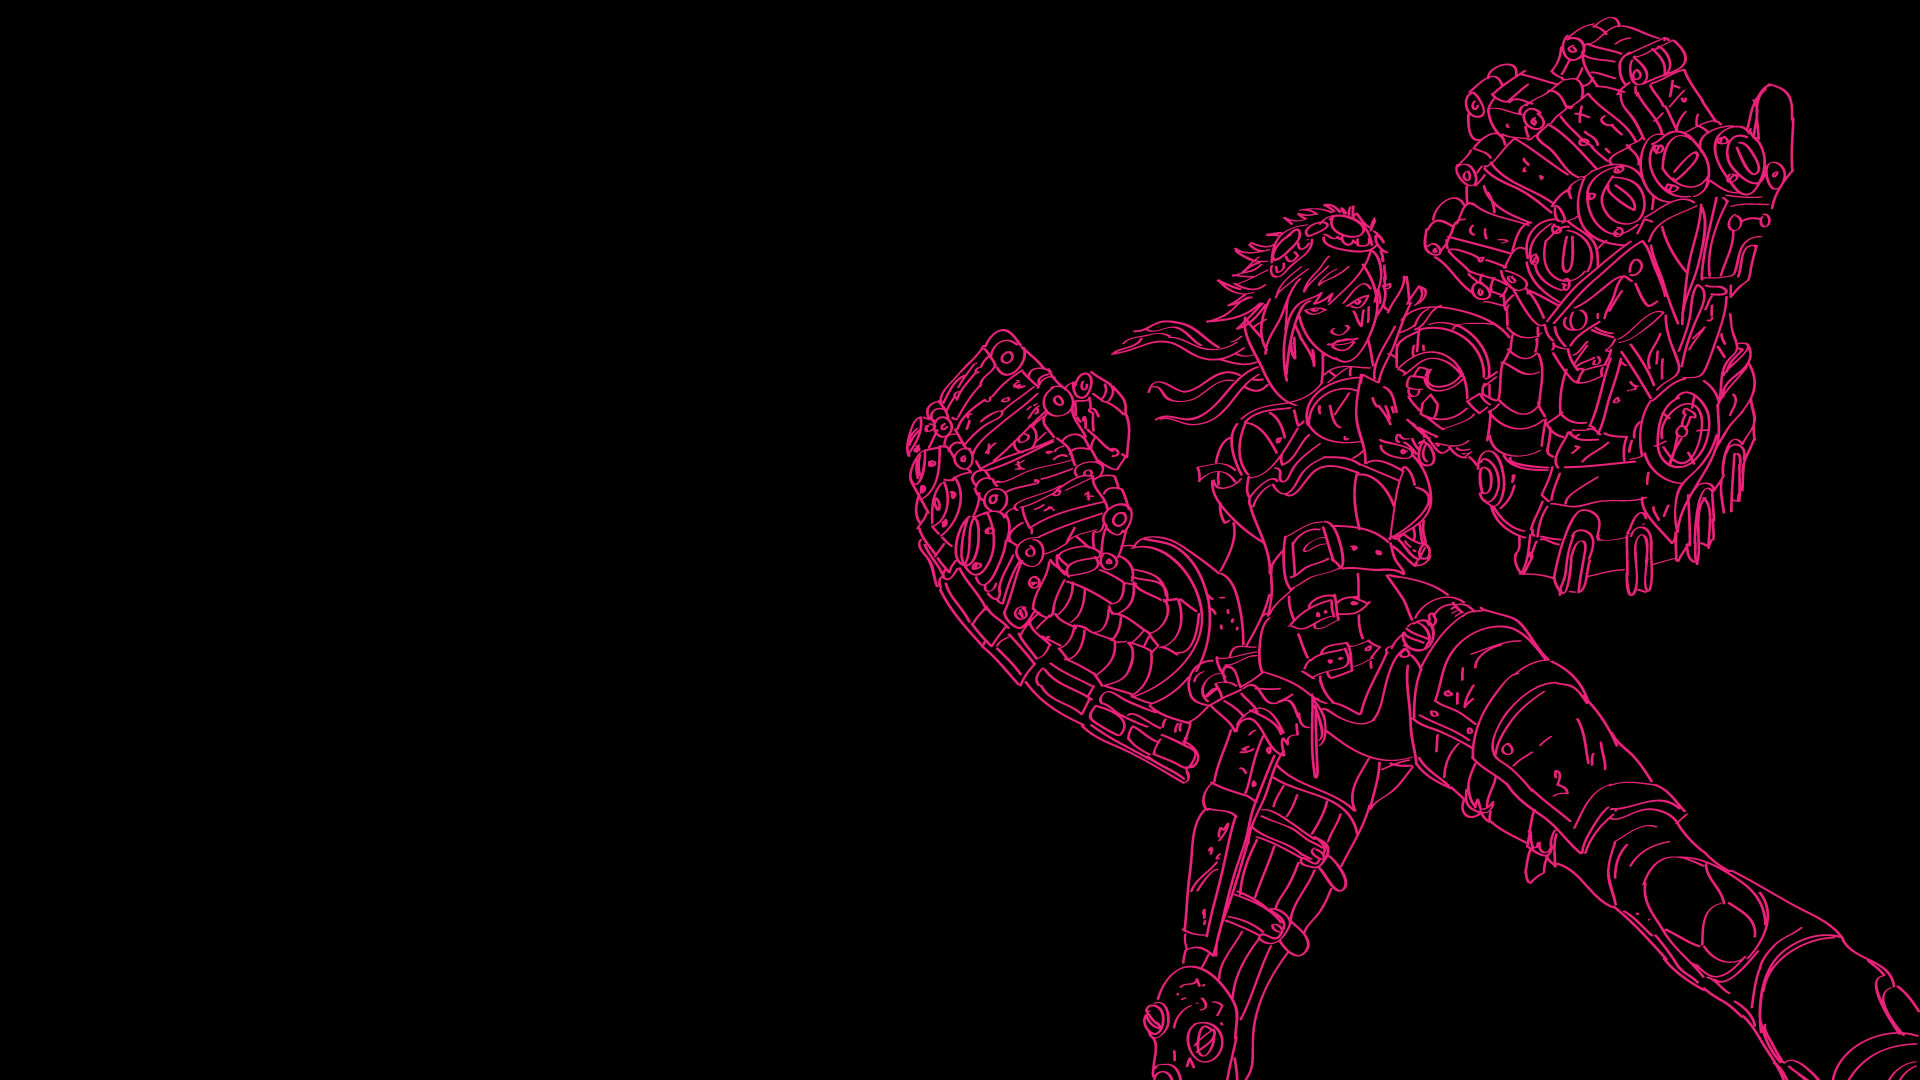 Vi Wallpaper By Sovietpancake League Of Legends Wallpapers